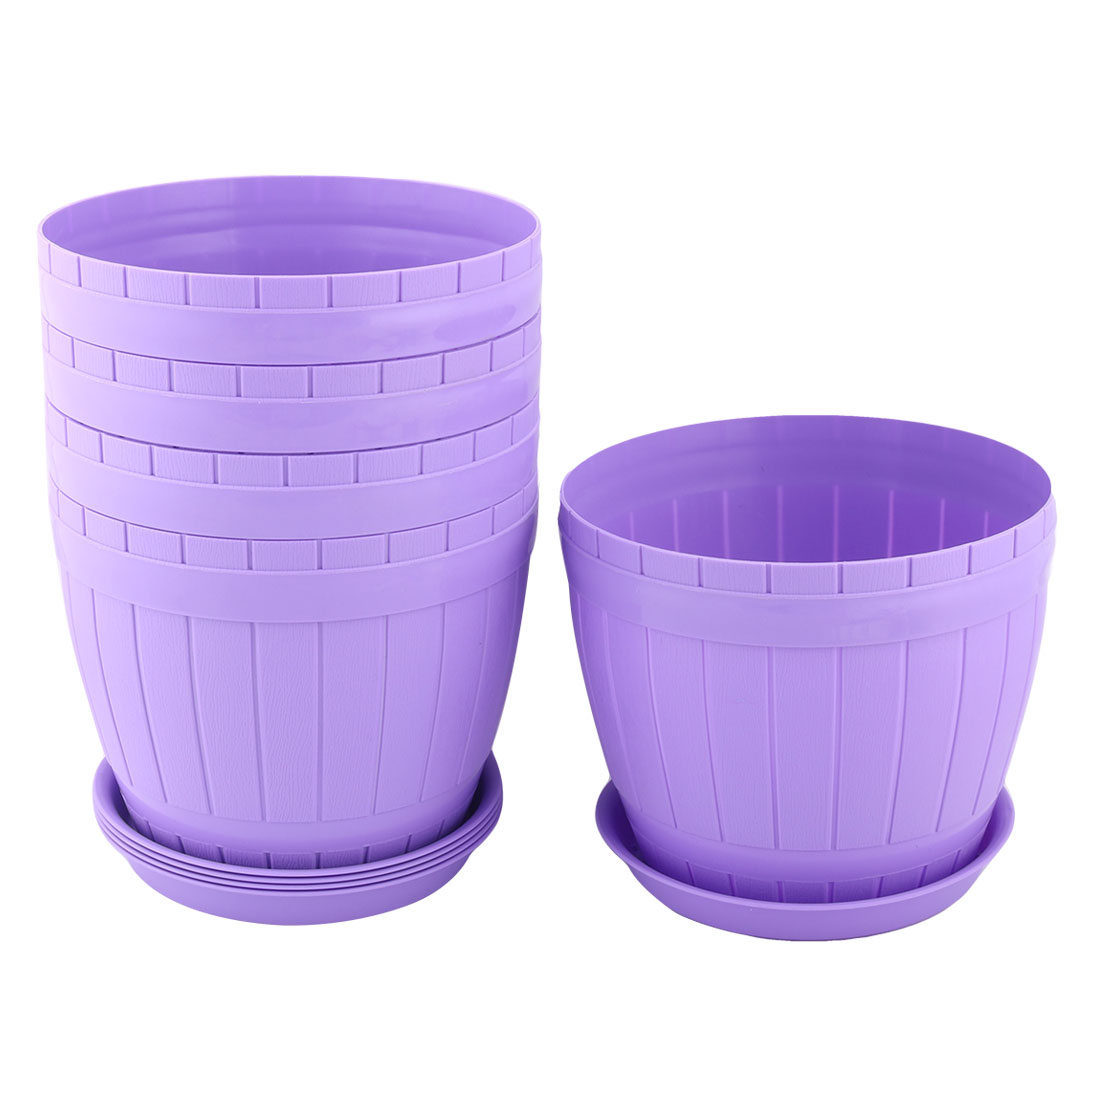 Home Parterre Plastic Round Aloes Plant Flower Seed Pot Holder Container Purple 5pcs